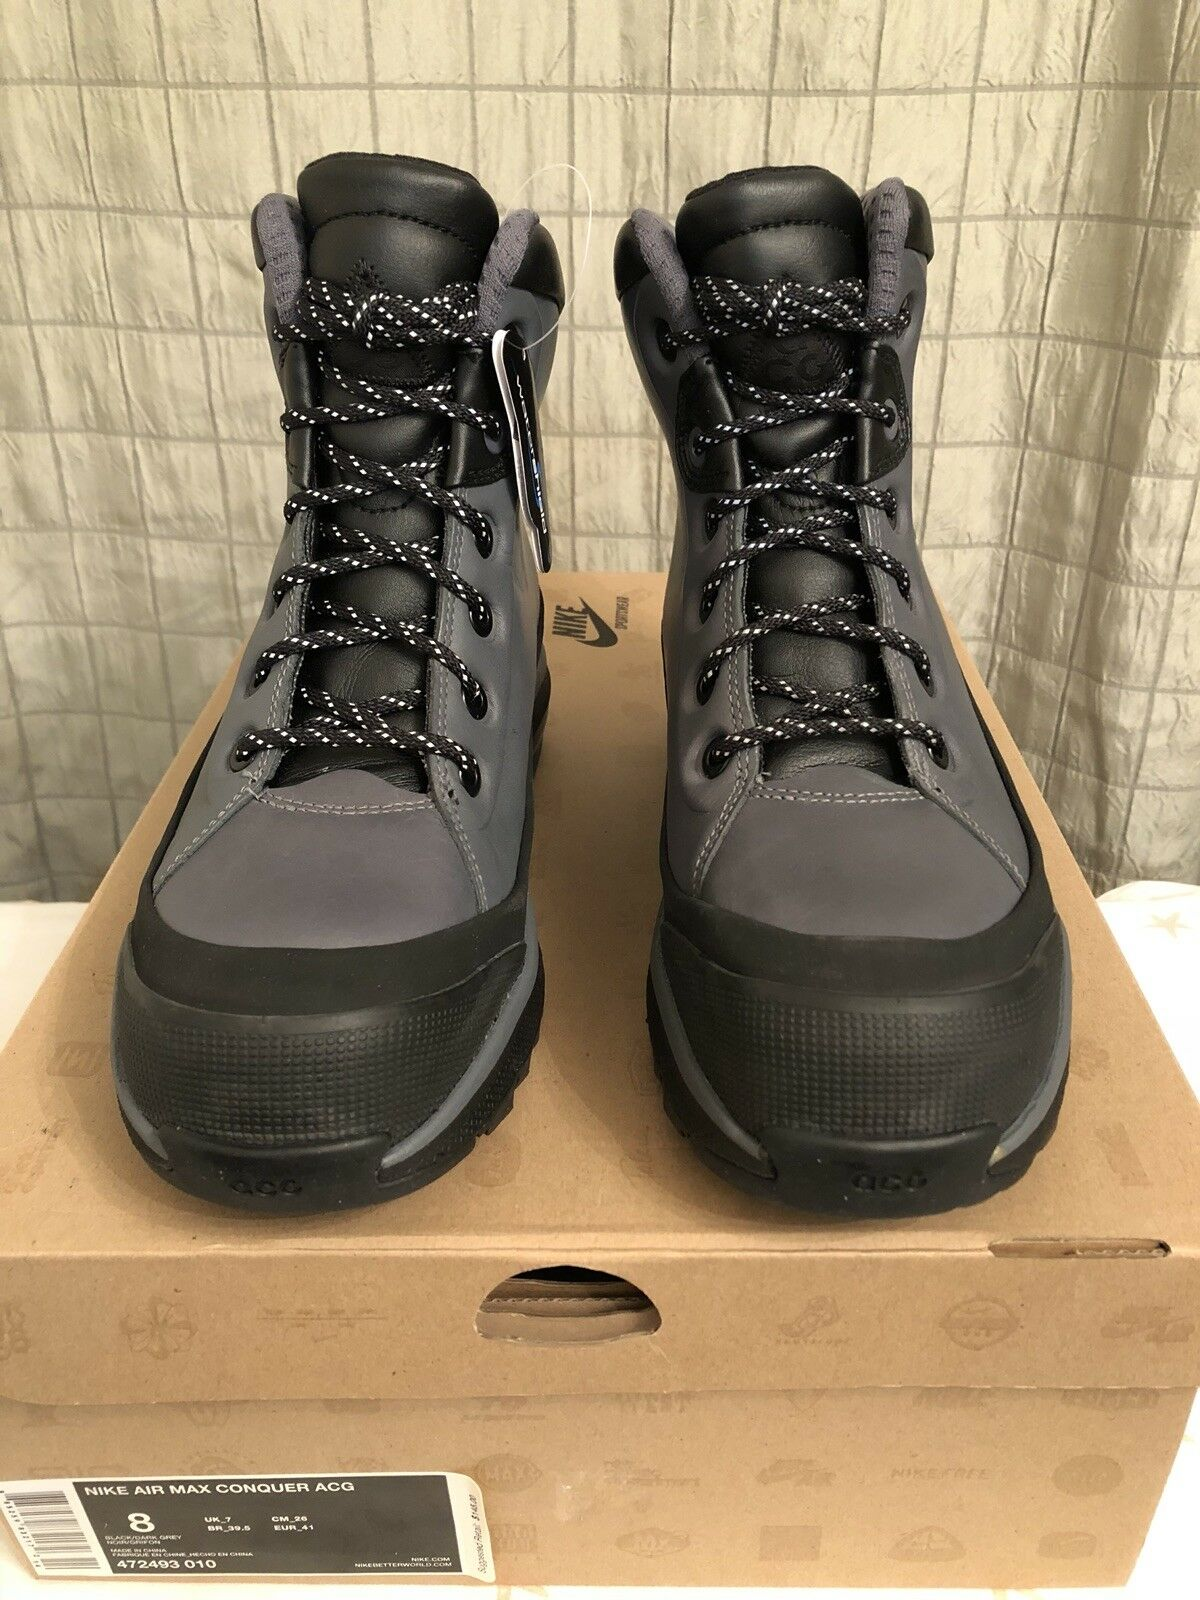 Nike Air Max Conquer ACG Boots Black Dark Grey 472493 010 Sz 8